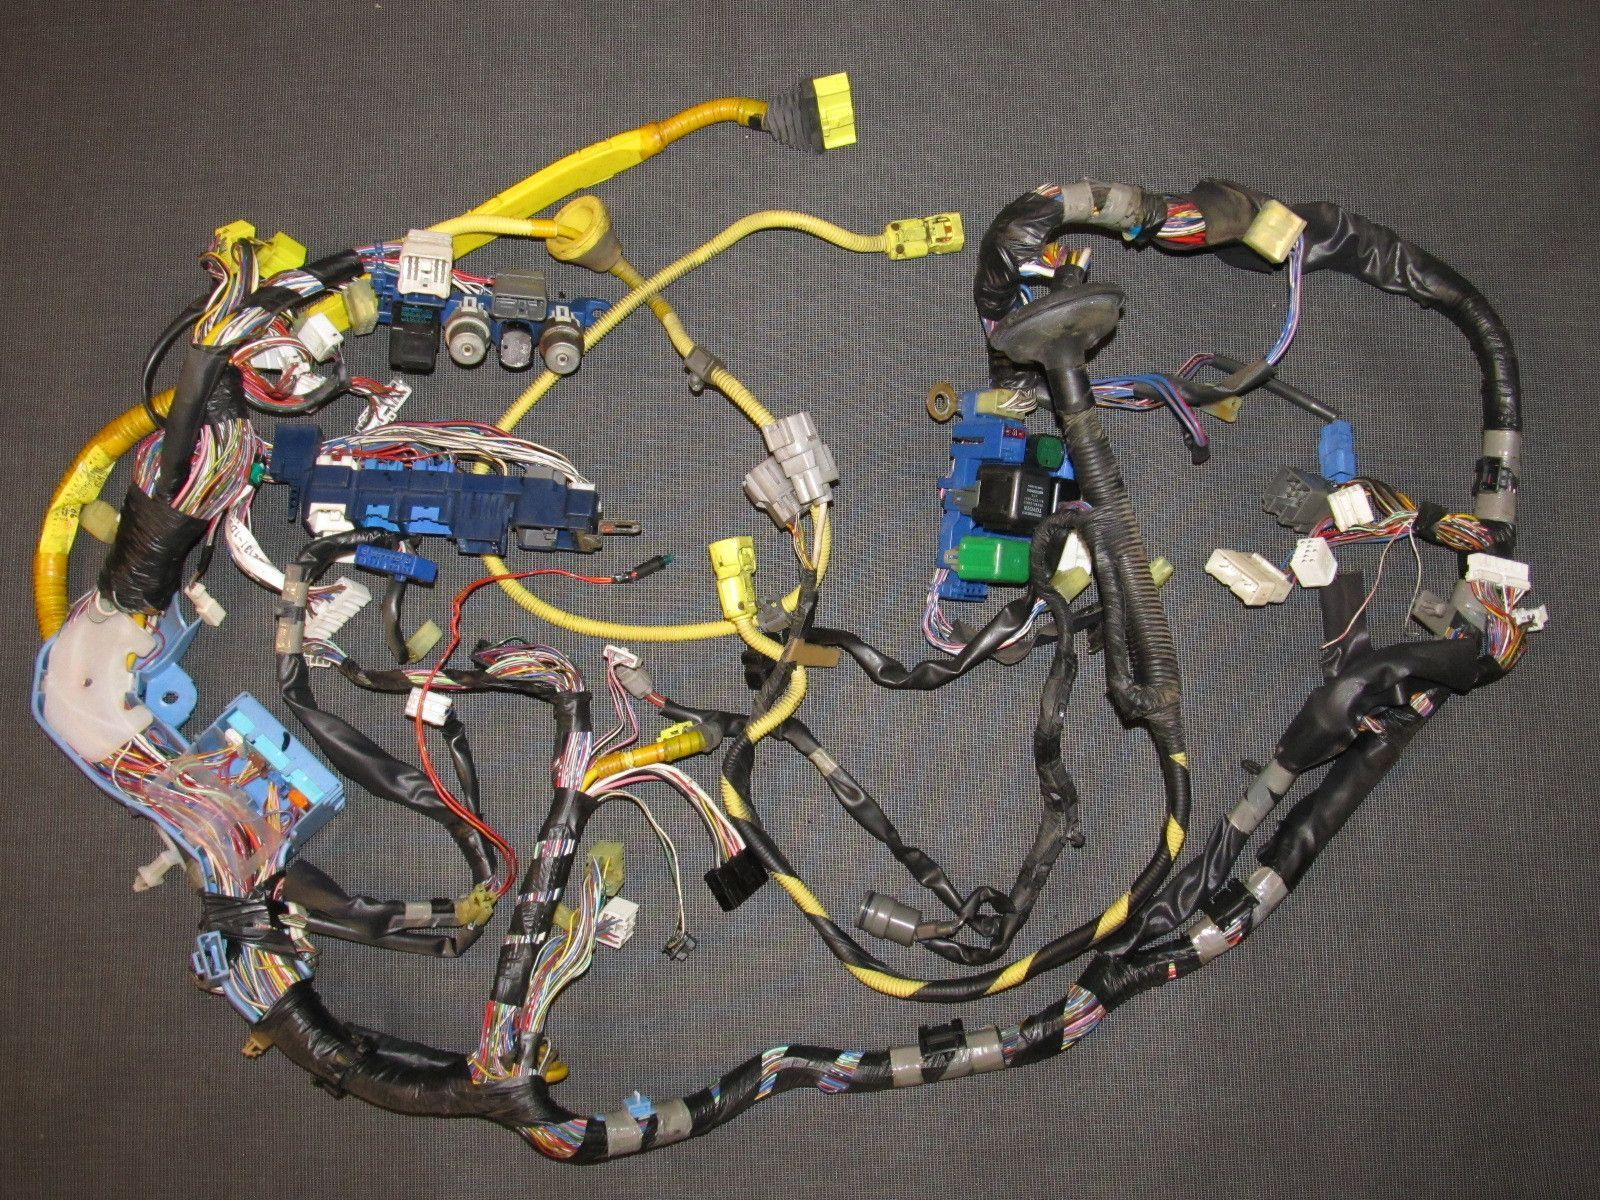 hight resolution of 1990 toyota supra oem dash heater system wiring harness toyota camry wiring harness wiring harness toyota supera